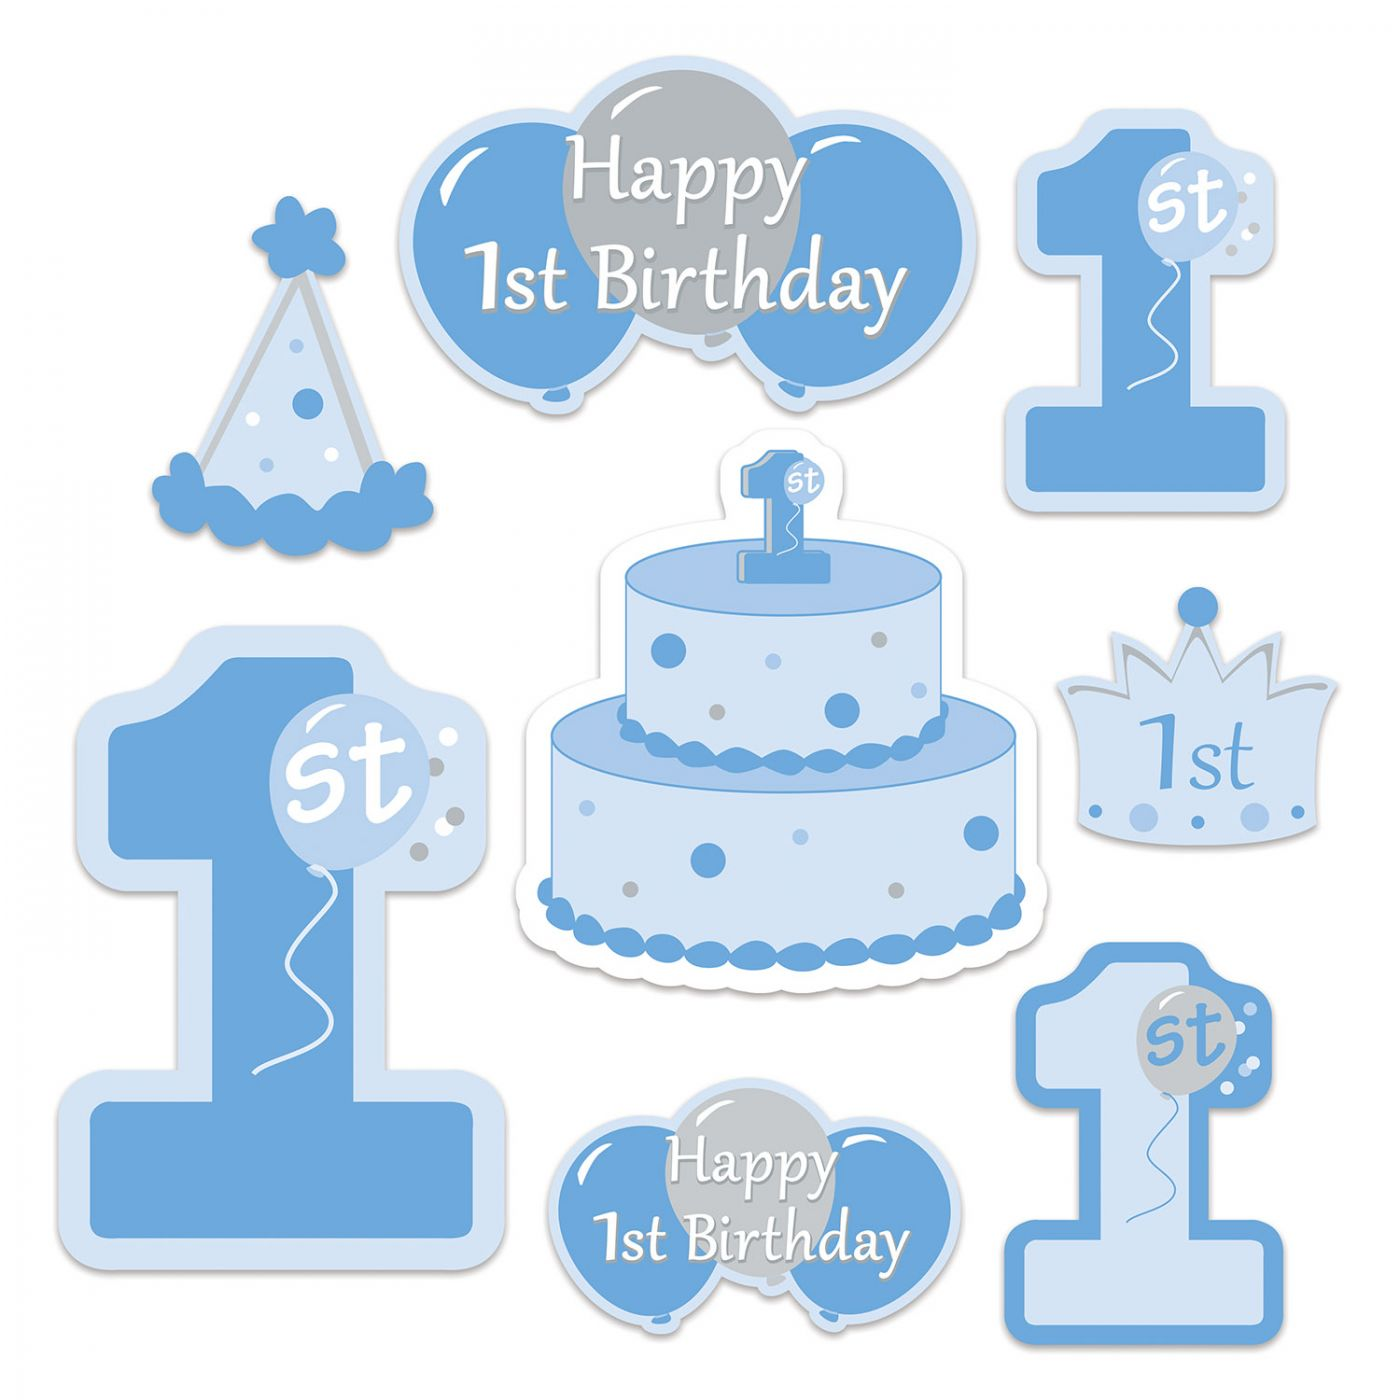 Image of 1st Birthday Cutouts